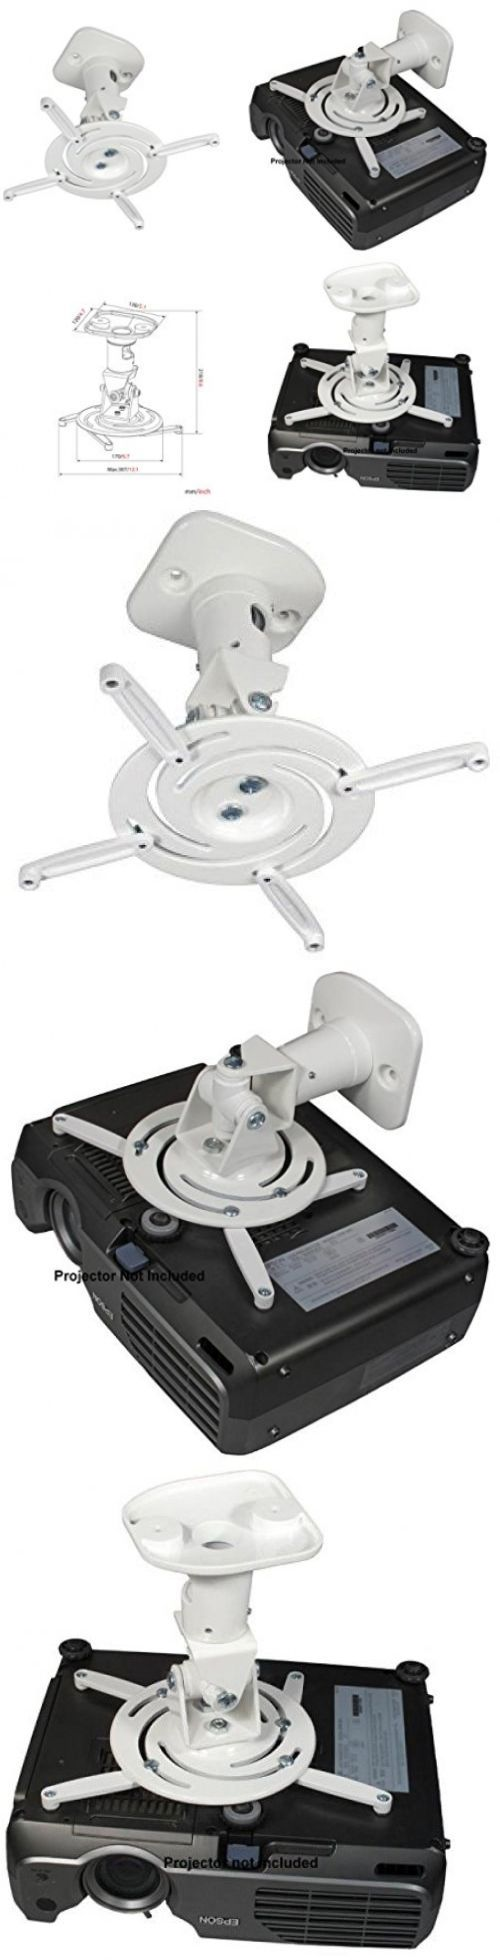 Projector Mounts and Stands: Amer Networks Universal Ceiling Projector Mount - White Amrp100 BUY IT NOW ONLY: $35.97